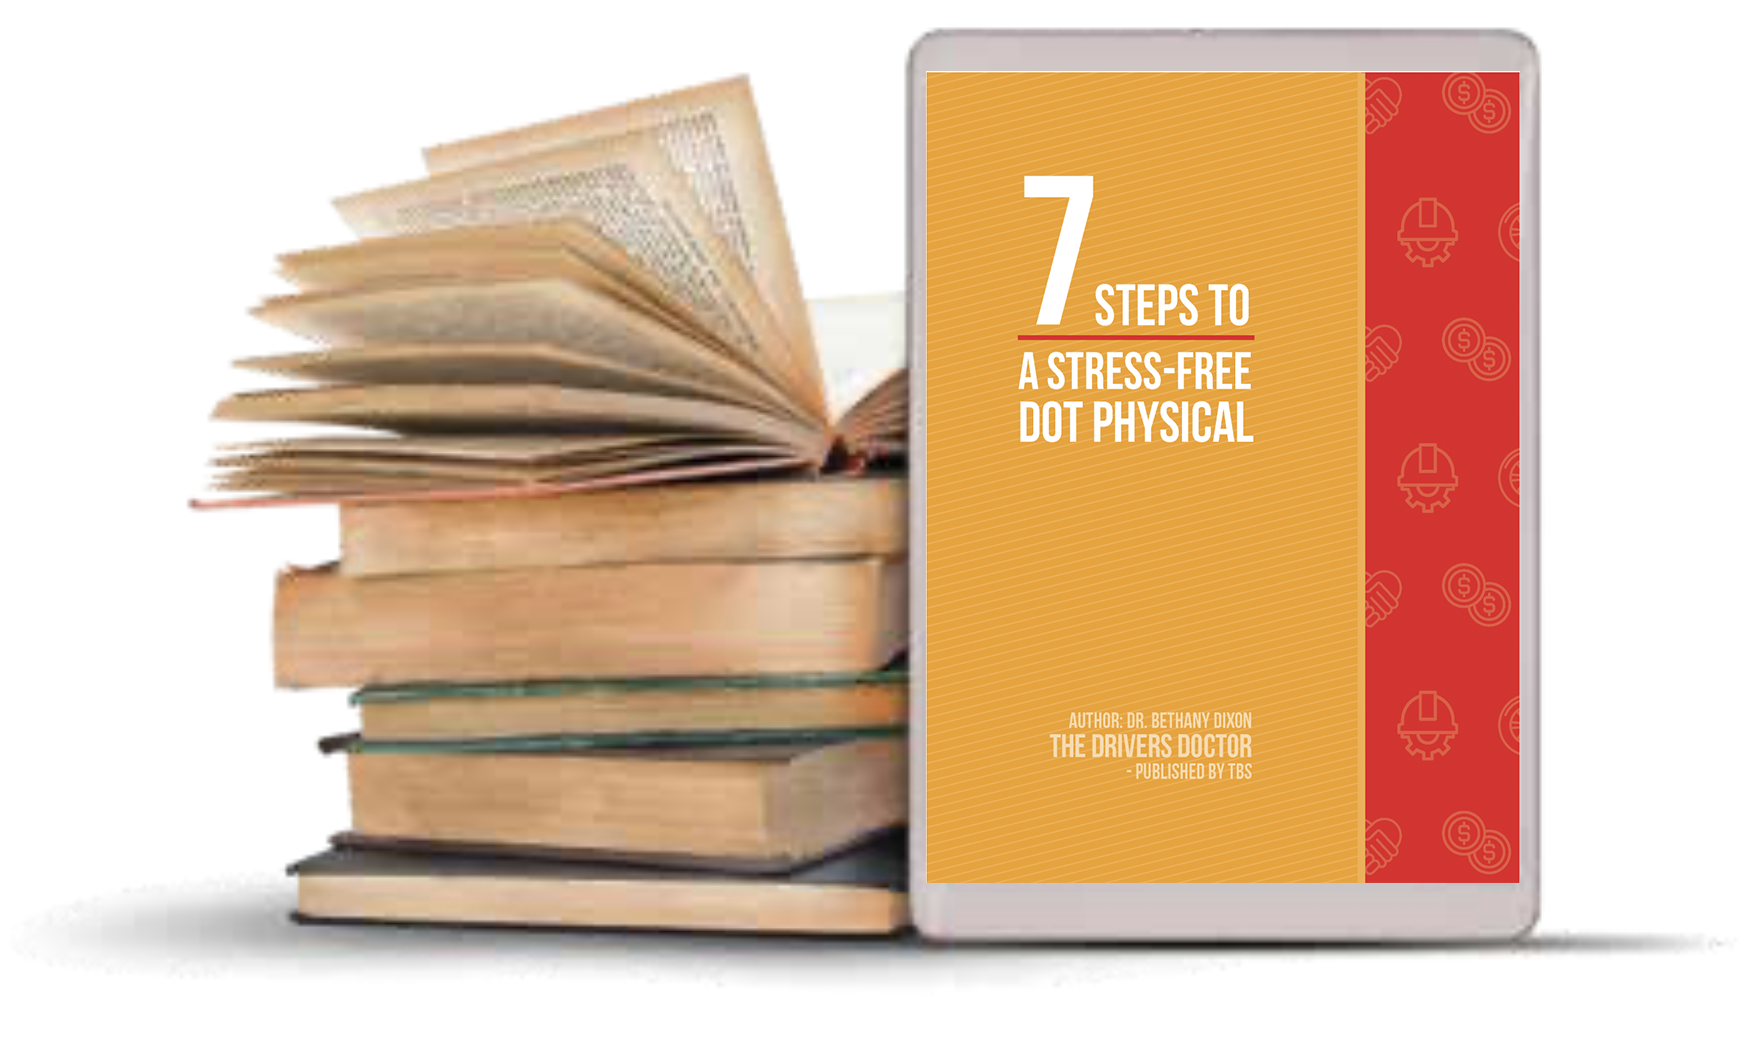 7 Steps to a Stress-Free DOT Physical E-Book